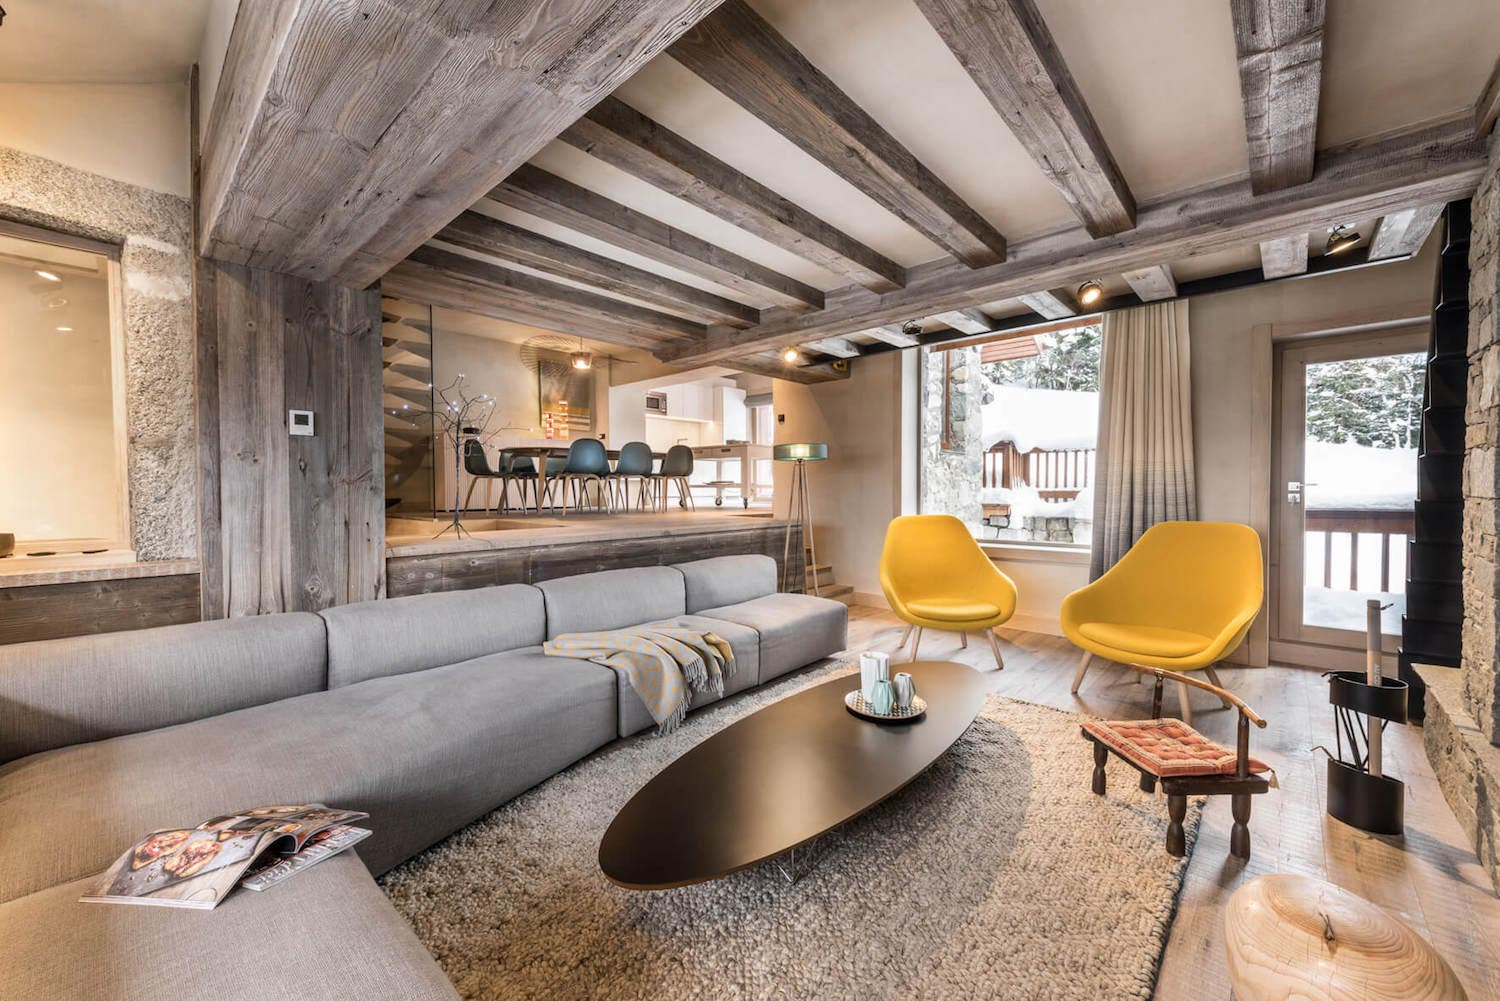 meribel chalet mixes well the traditional look of an mountain home meribel chalet mixes well the traditional look of an mountain home with a modern luxury interior design caandesign architecture and home design blog